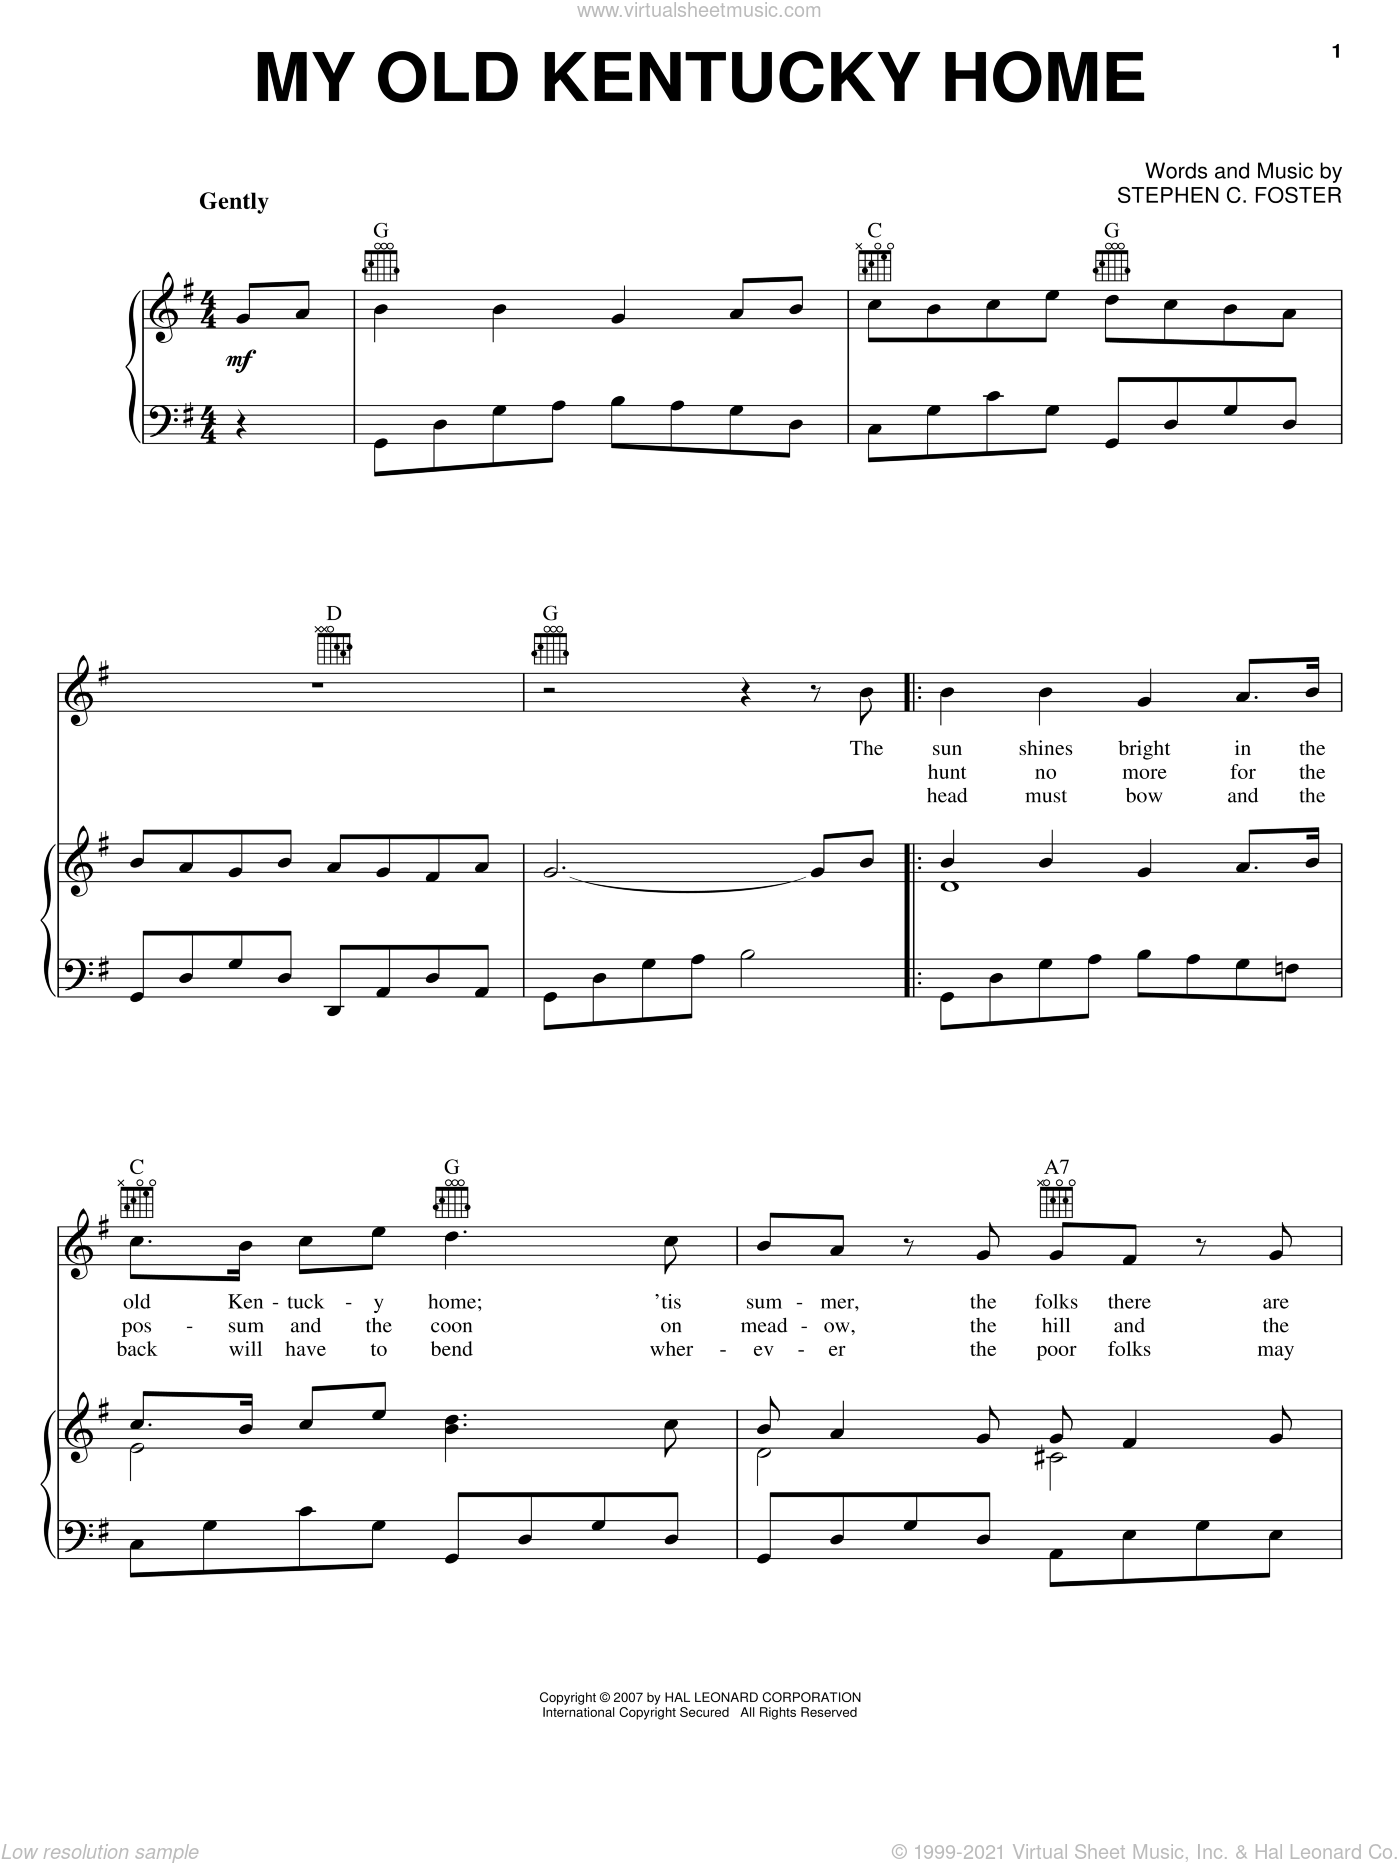 Foster - My Old Kentucky Home sheet music for voice, piano or guitar